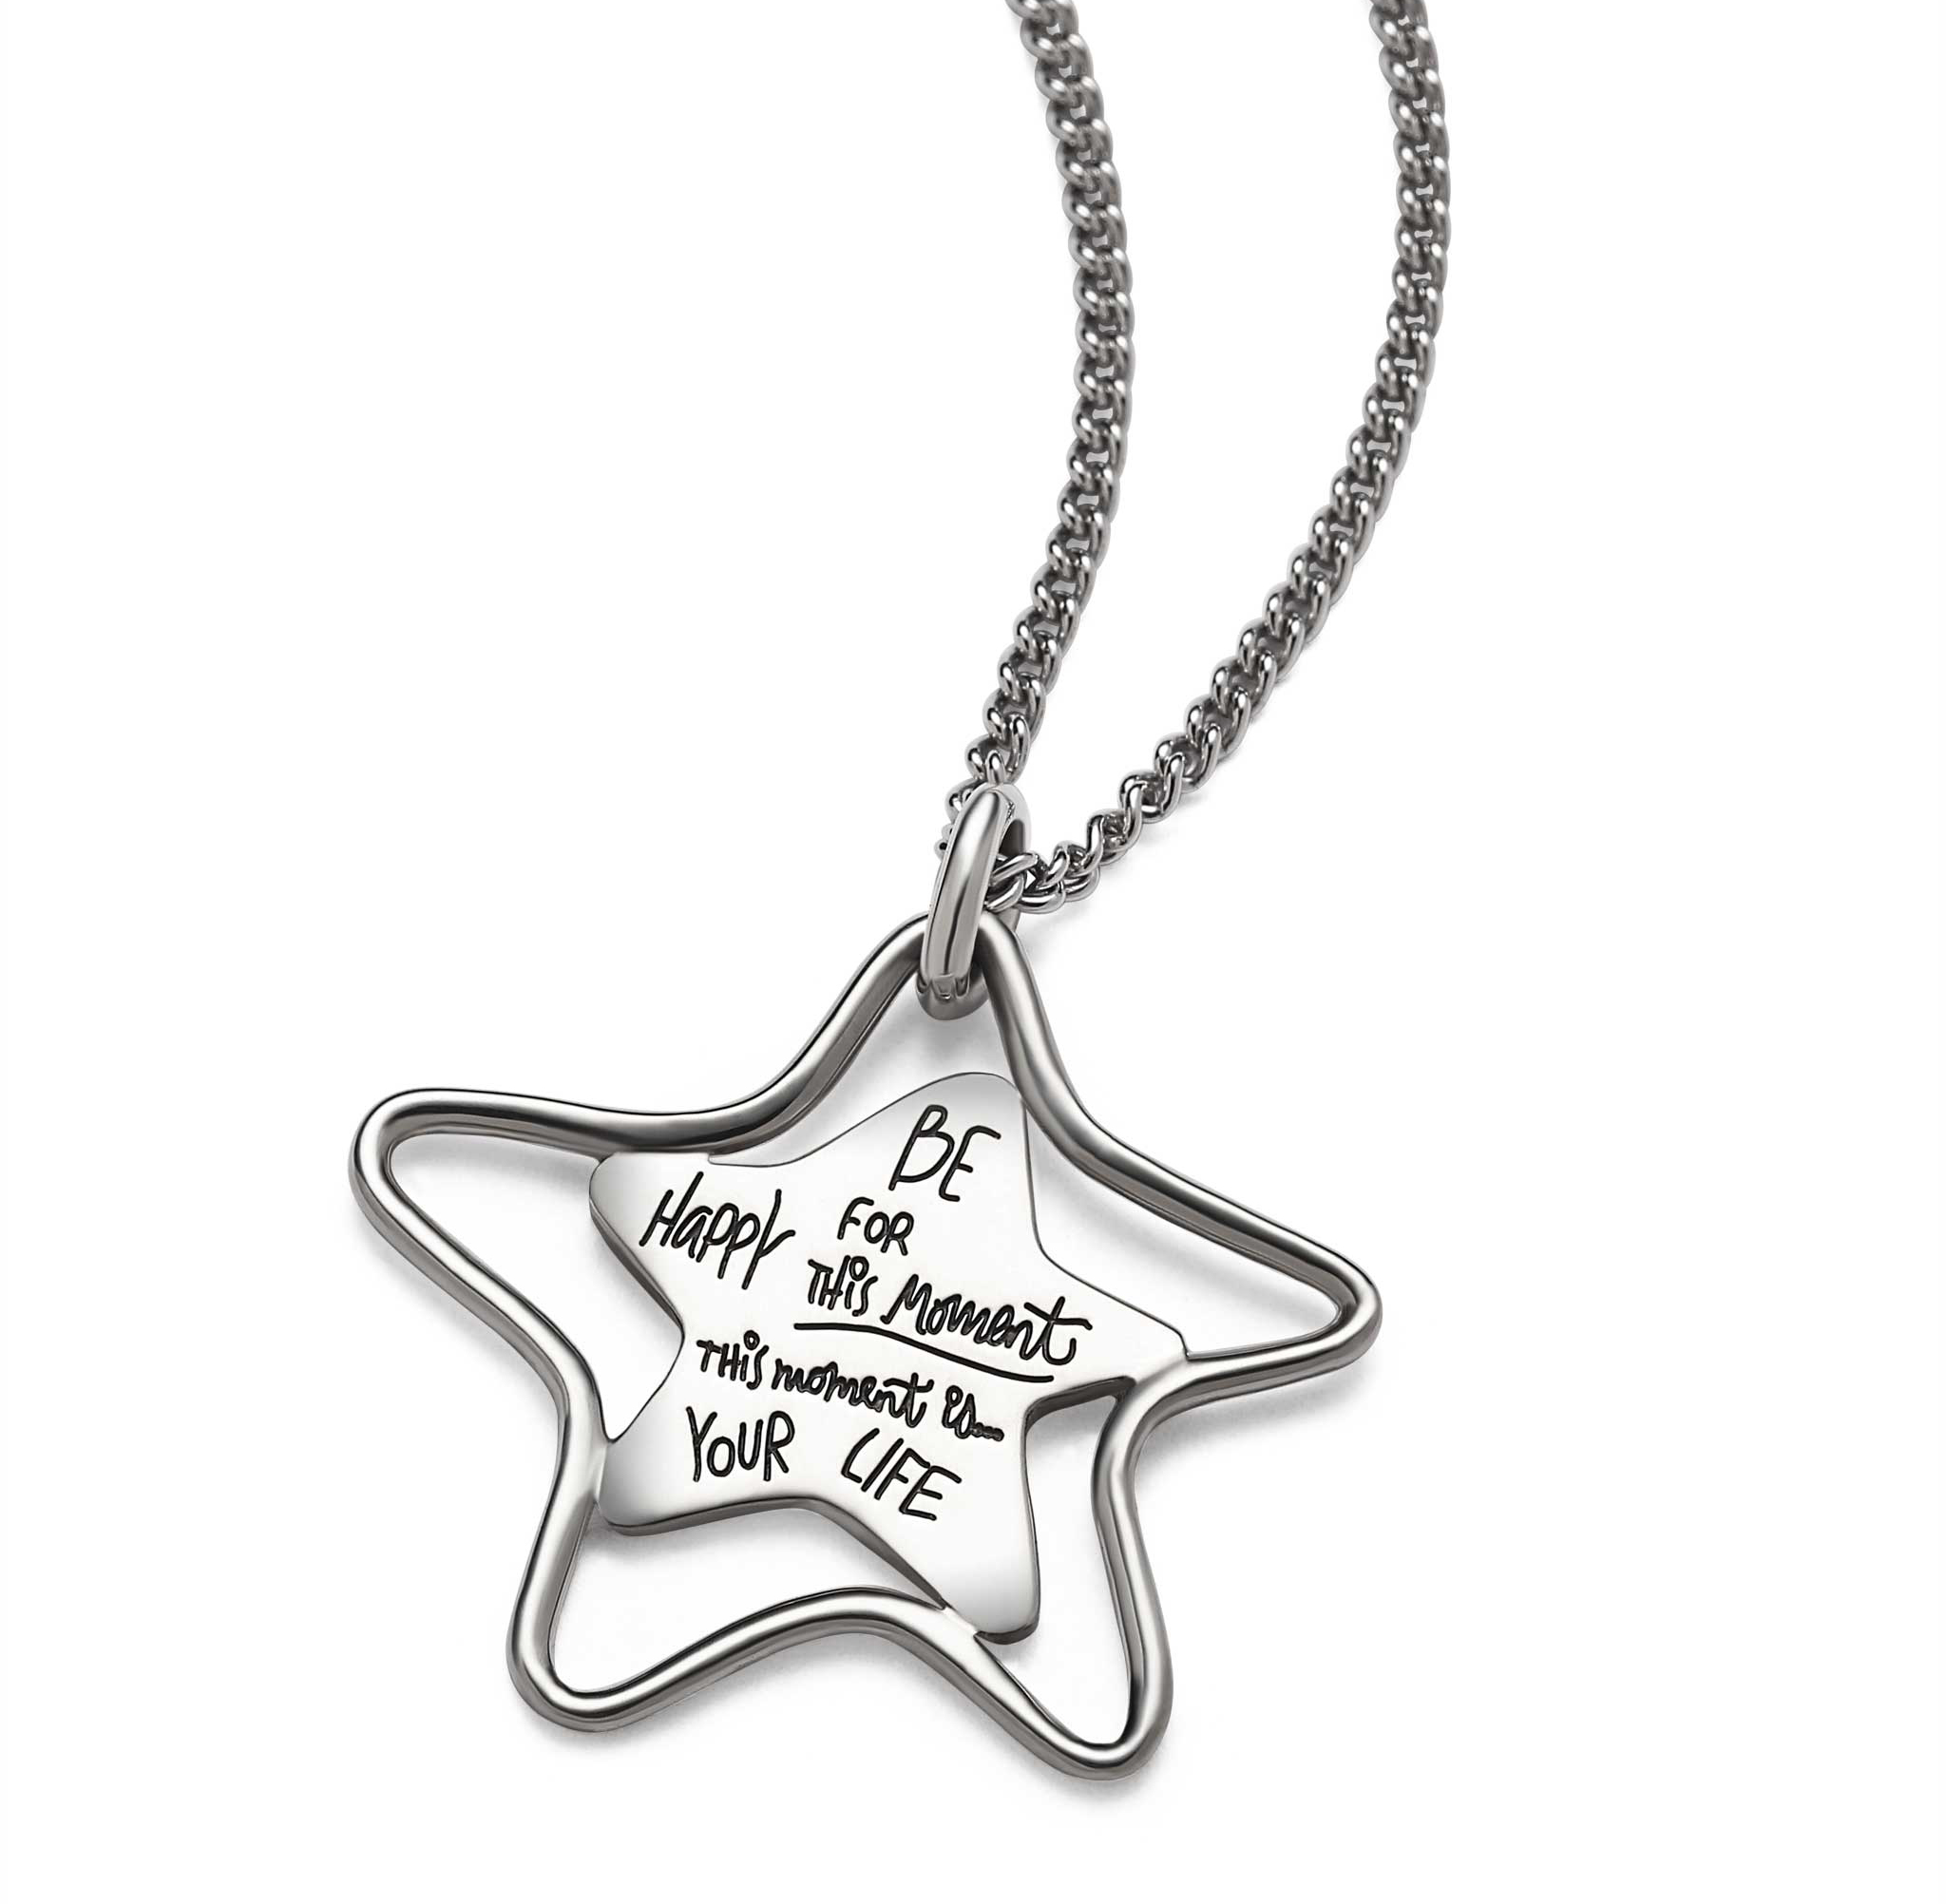 Inspirational star necklace inside a wire star with a quote that reads: Be happy for this moment. This moment...is your life.